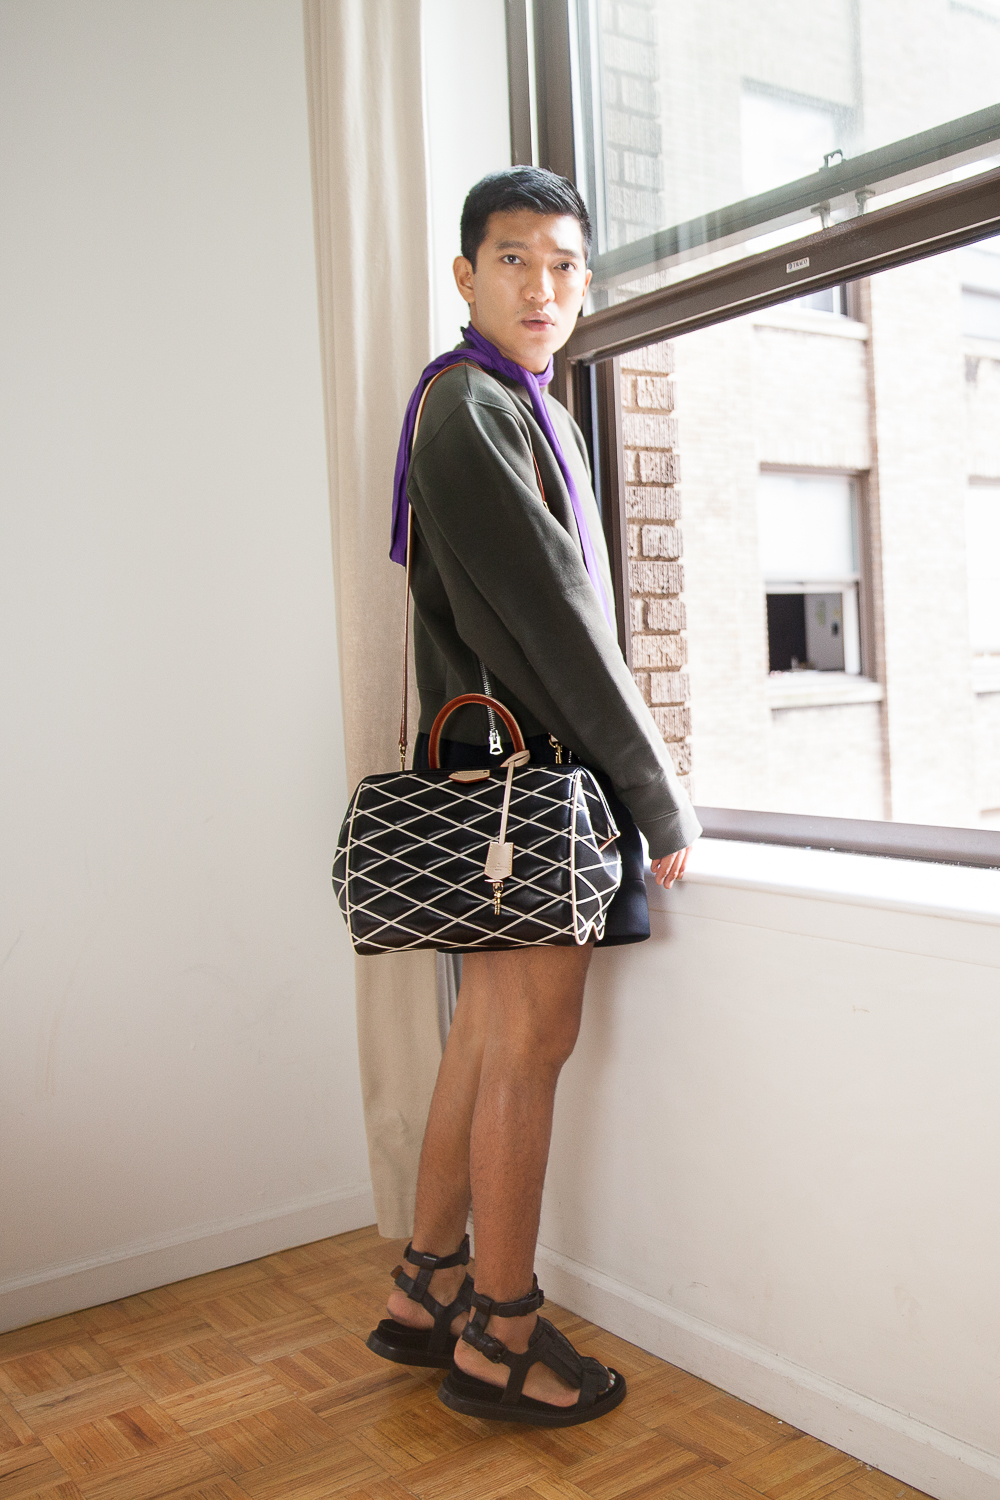 Fall Winter 2014 Louis Vuitton Malletage Doc Speedy PM bag worn by Bryanboy